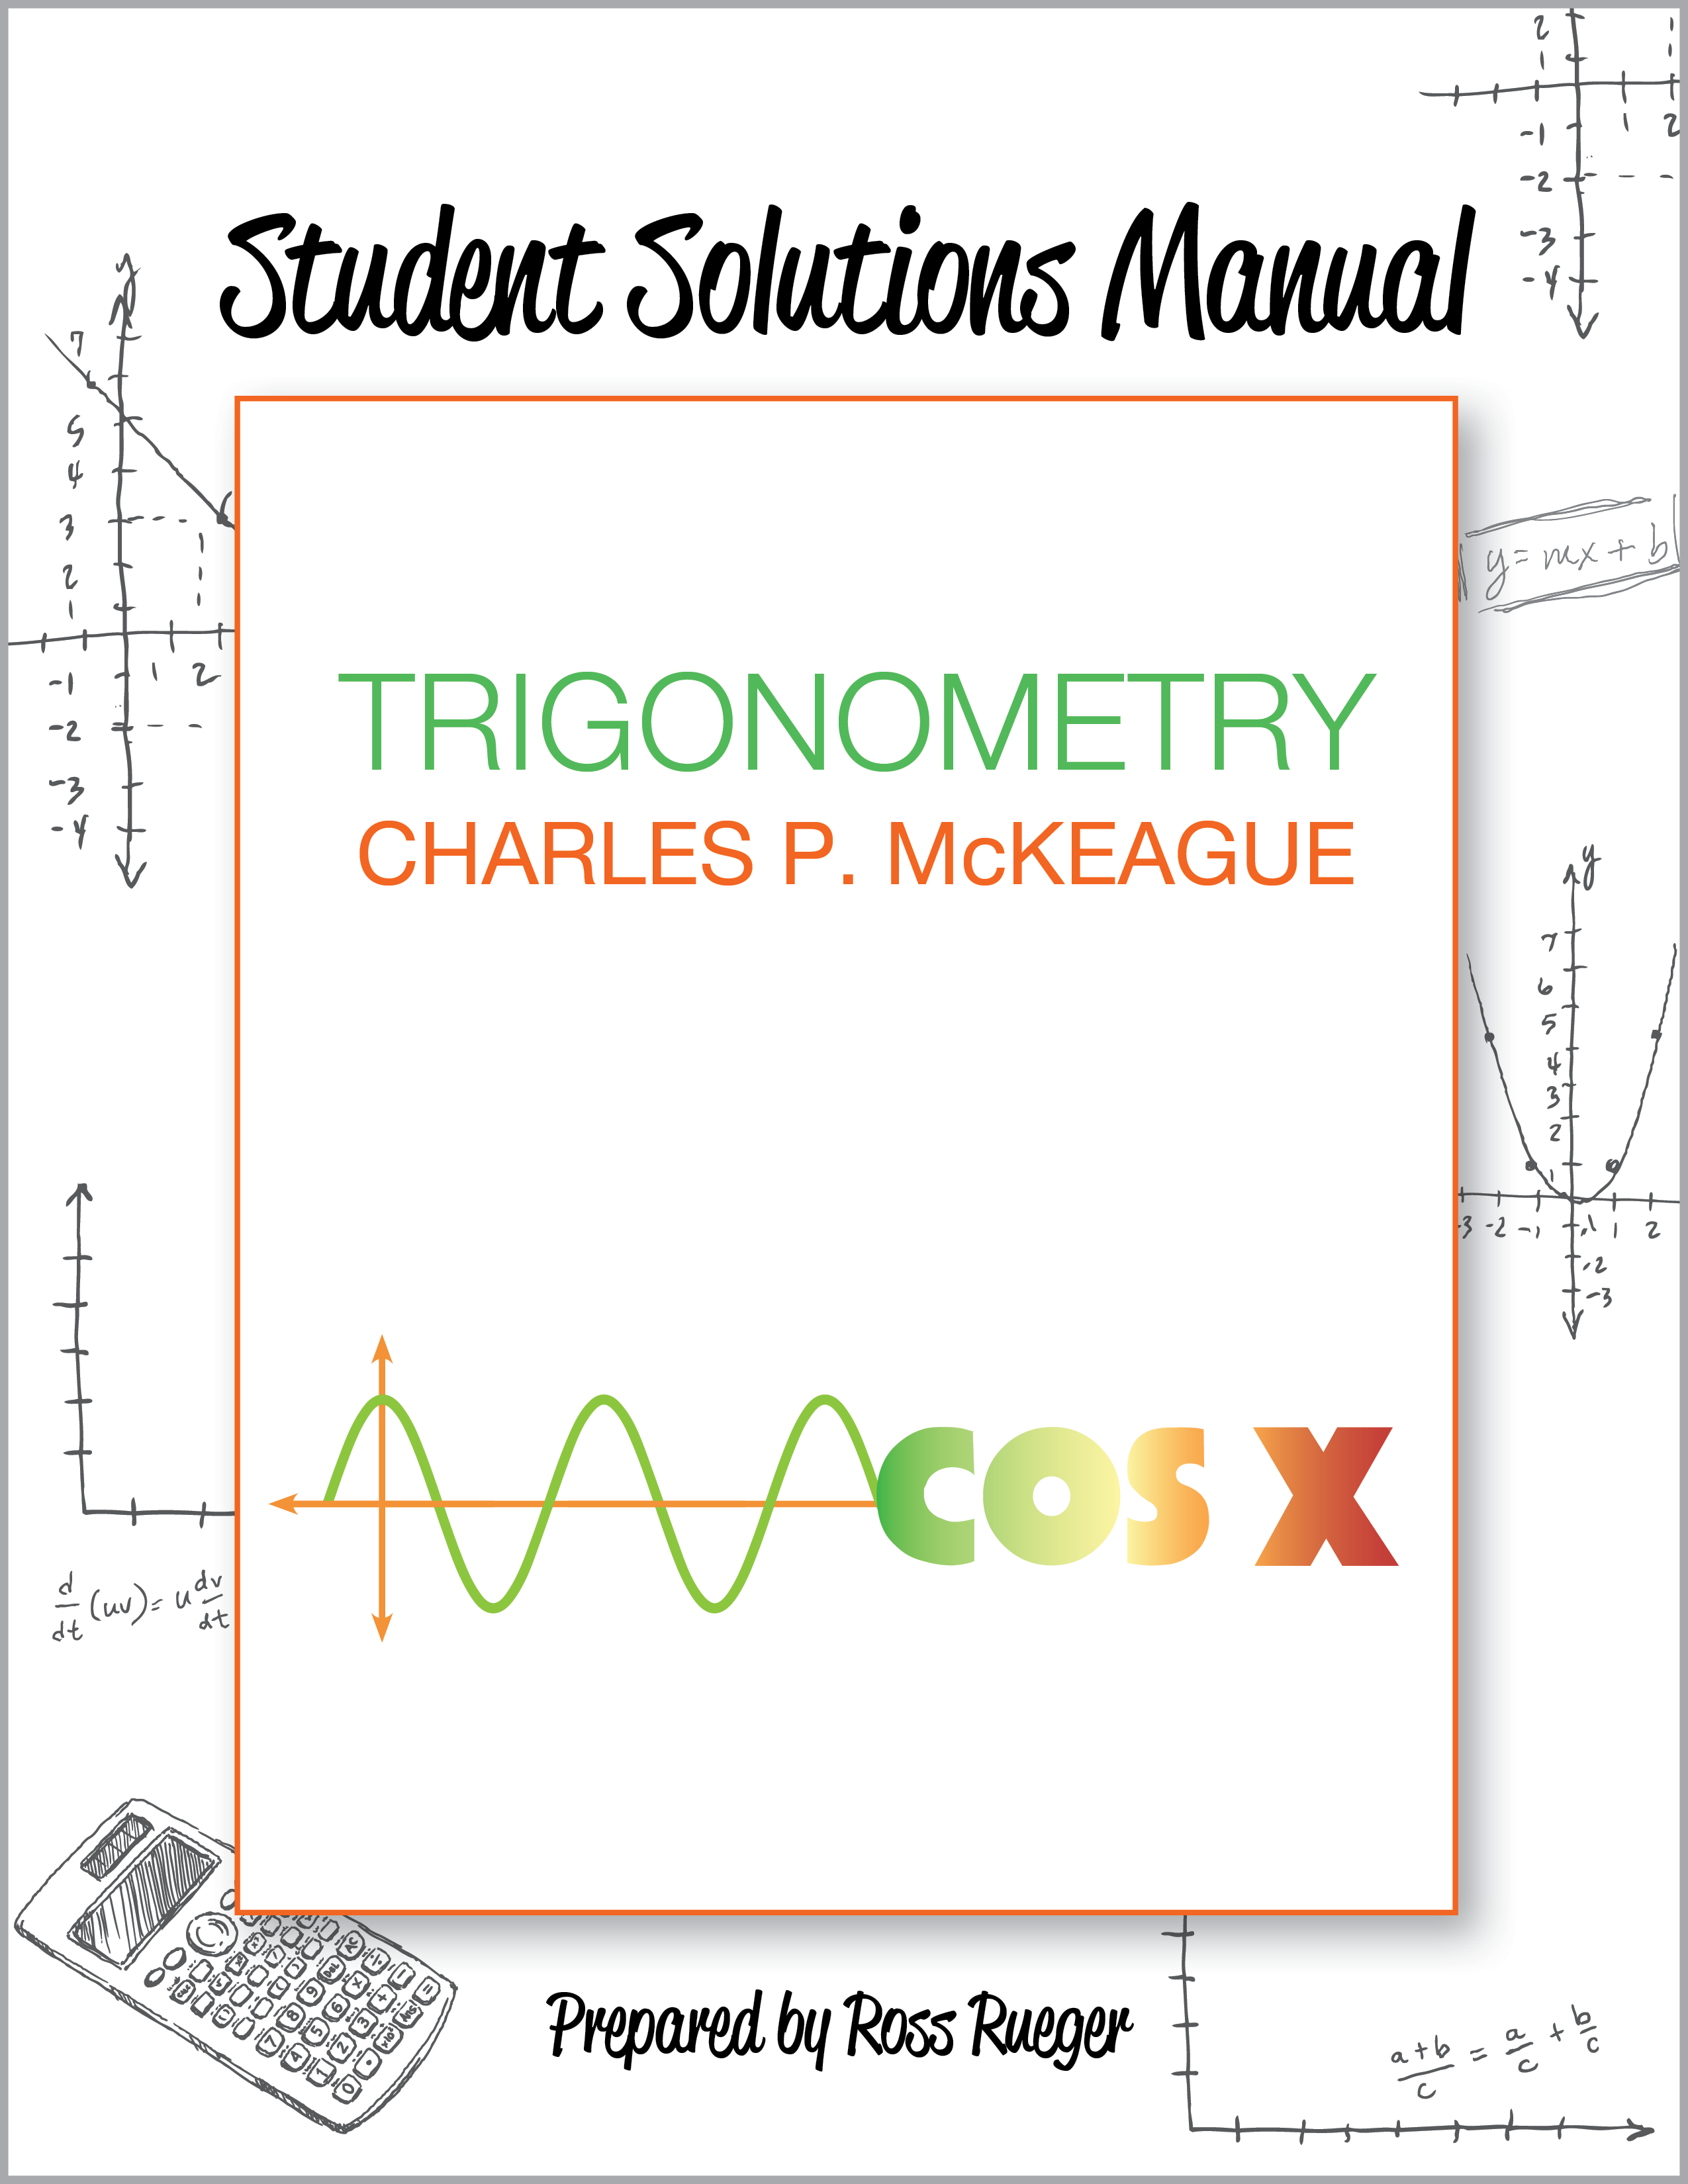 Student Solutions Manual for Trigonometry